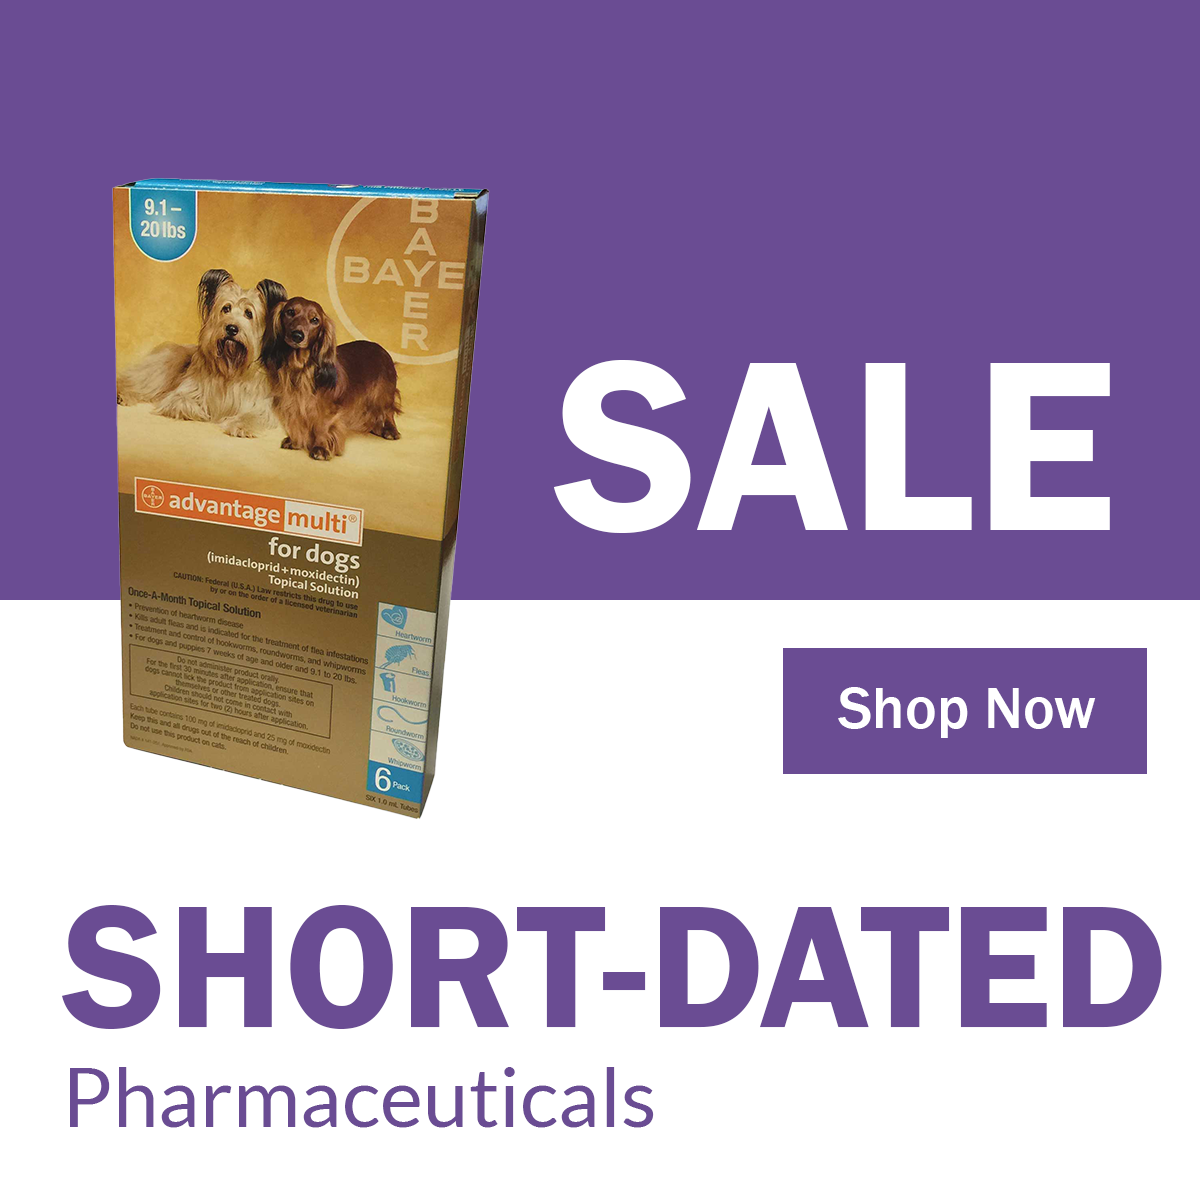 Short-Dated Pharmaceutical Sale